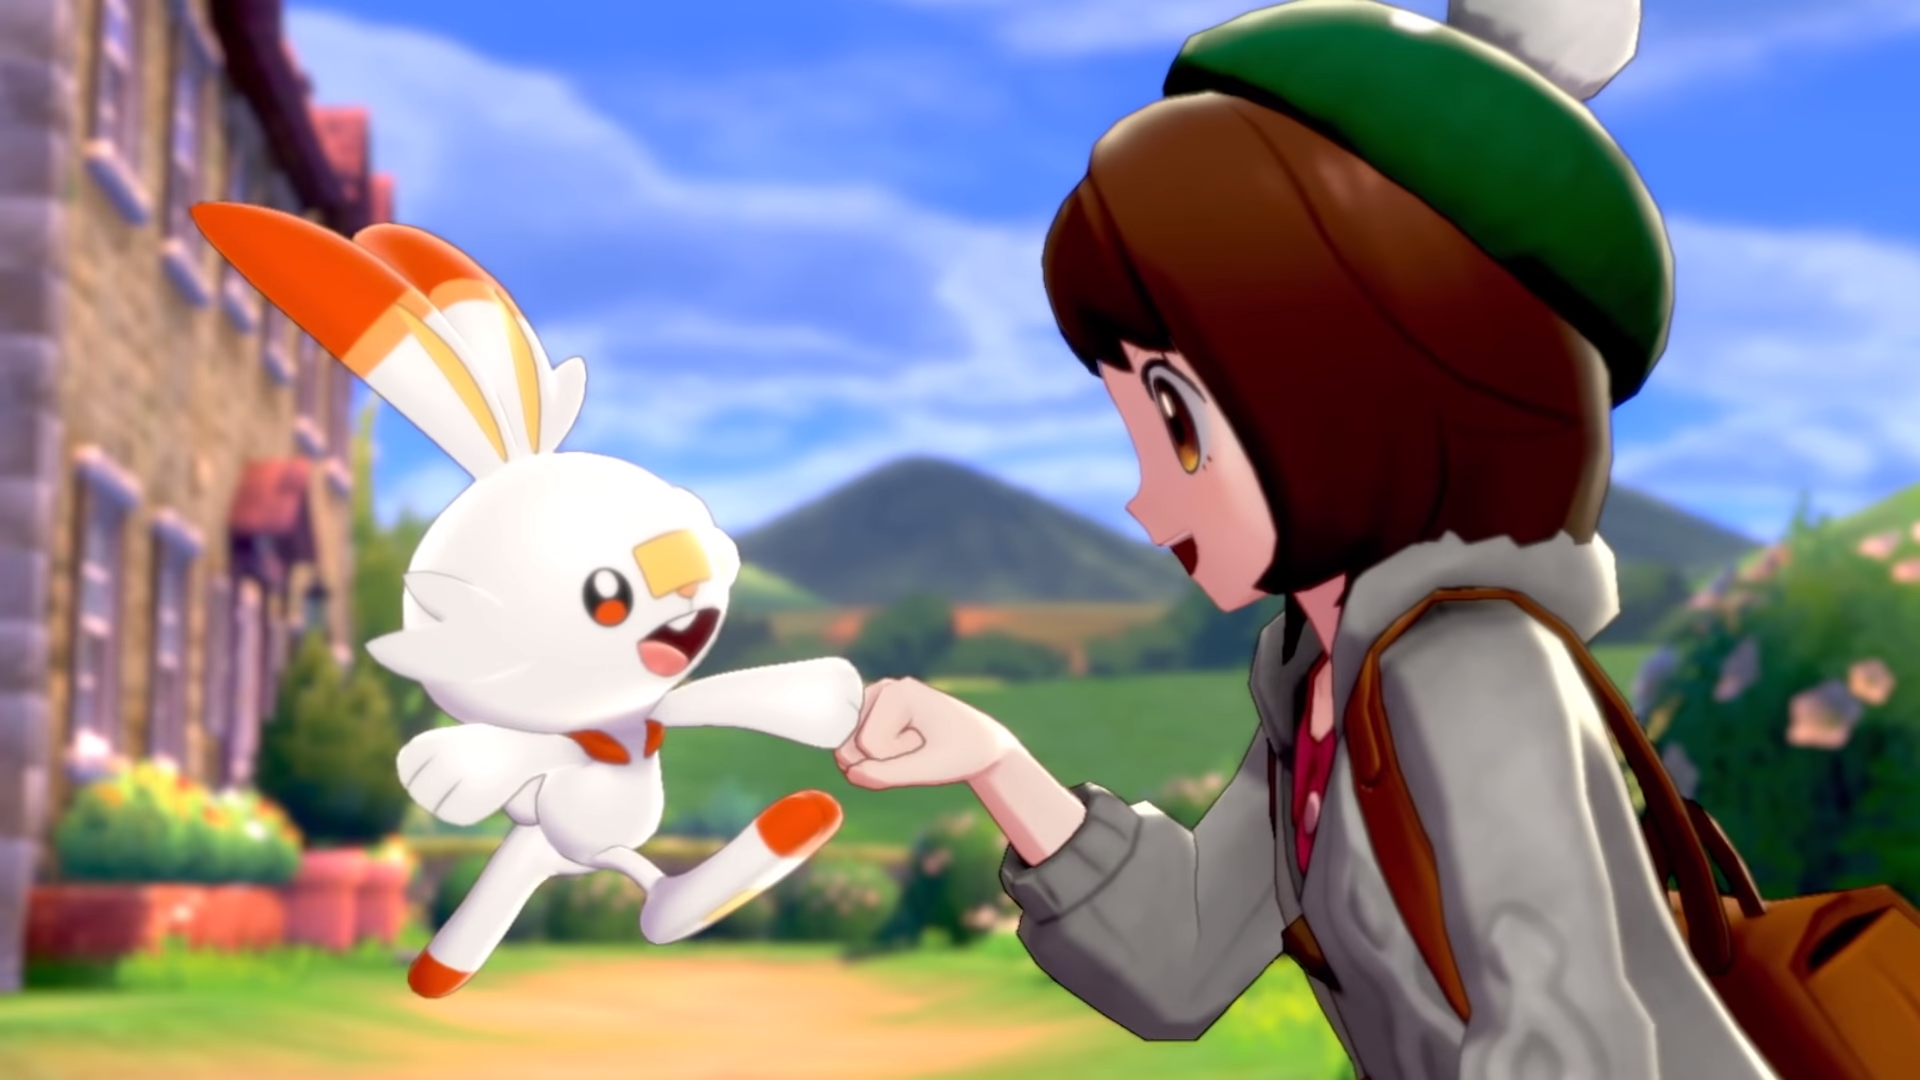 Pokémon Sword and Shield open up the world enough to spark wonder